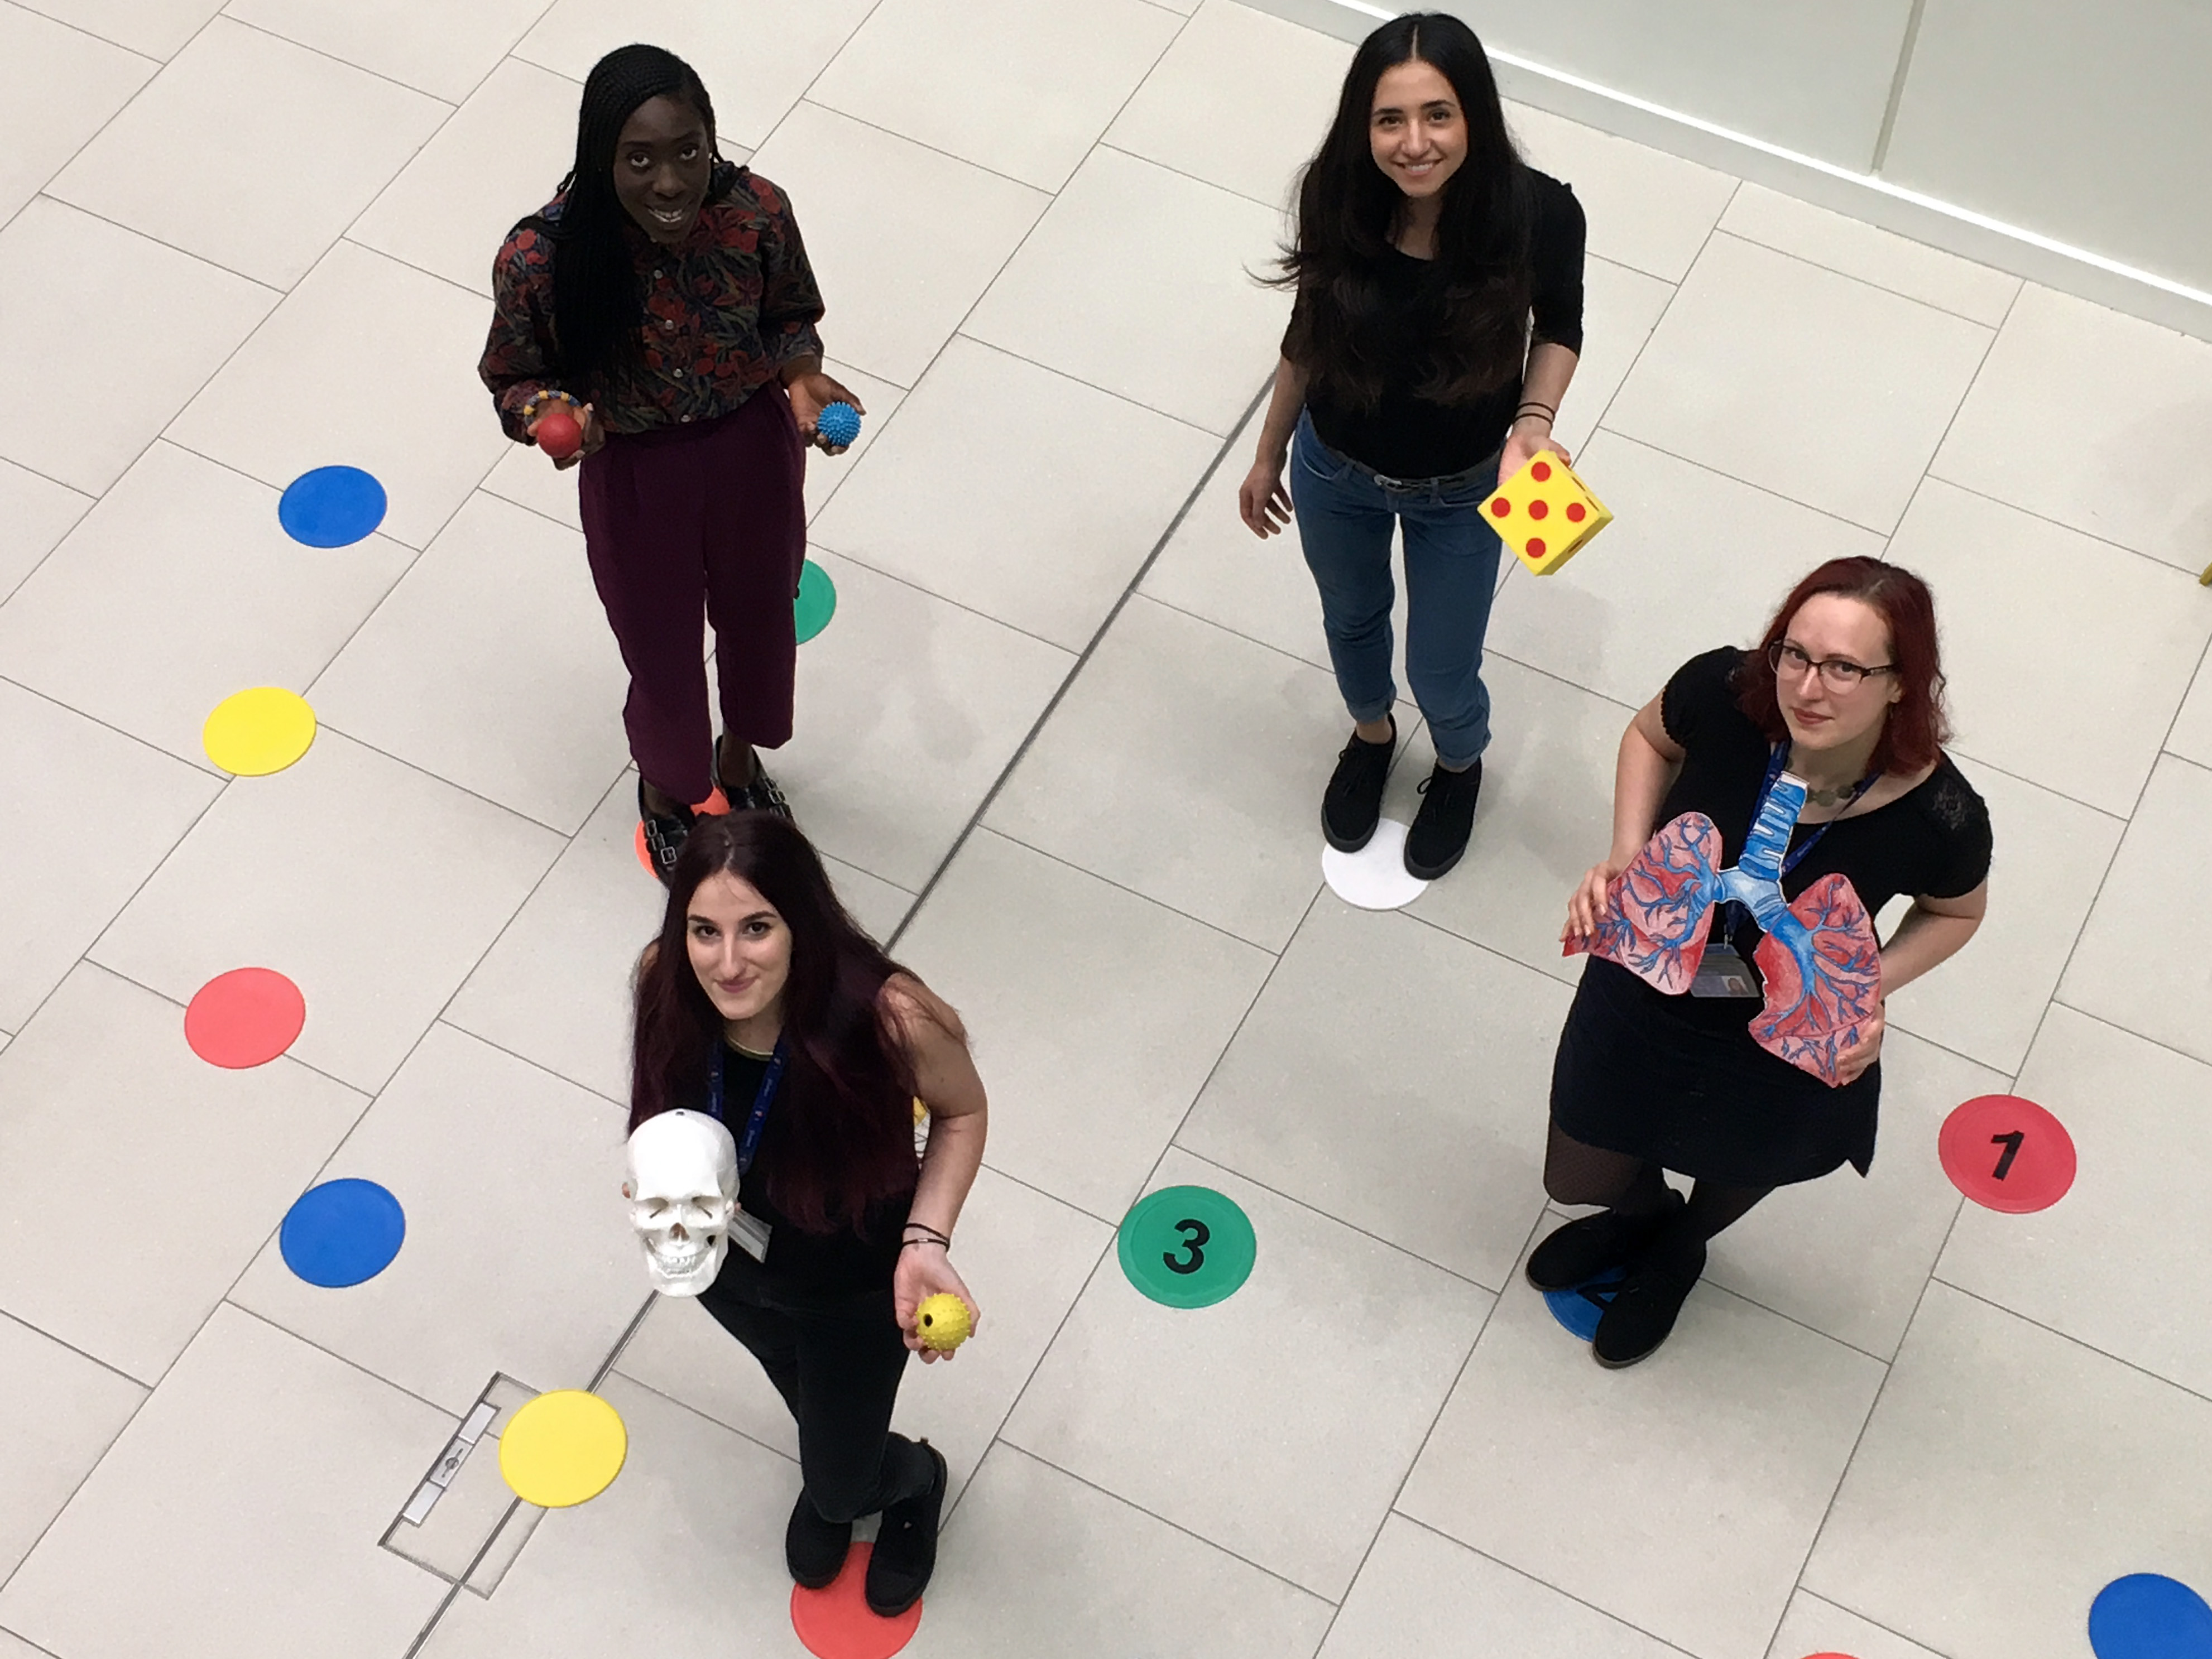 Playing a game about the workings of stem cells are (l-r) PhD students Theresa Tachie-Menson, Anna Seggara Fas, Alexia Kalogeropulou, and Elena Purlyte